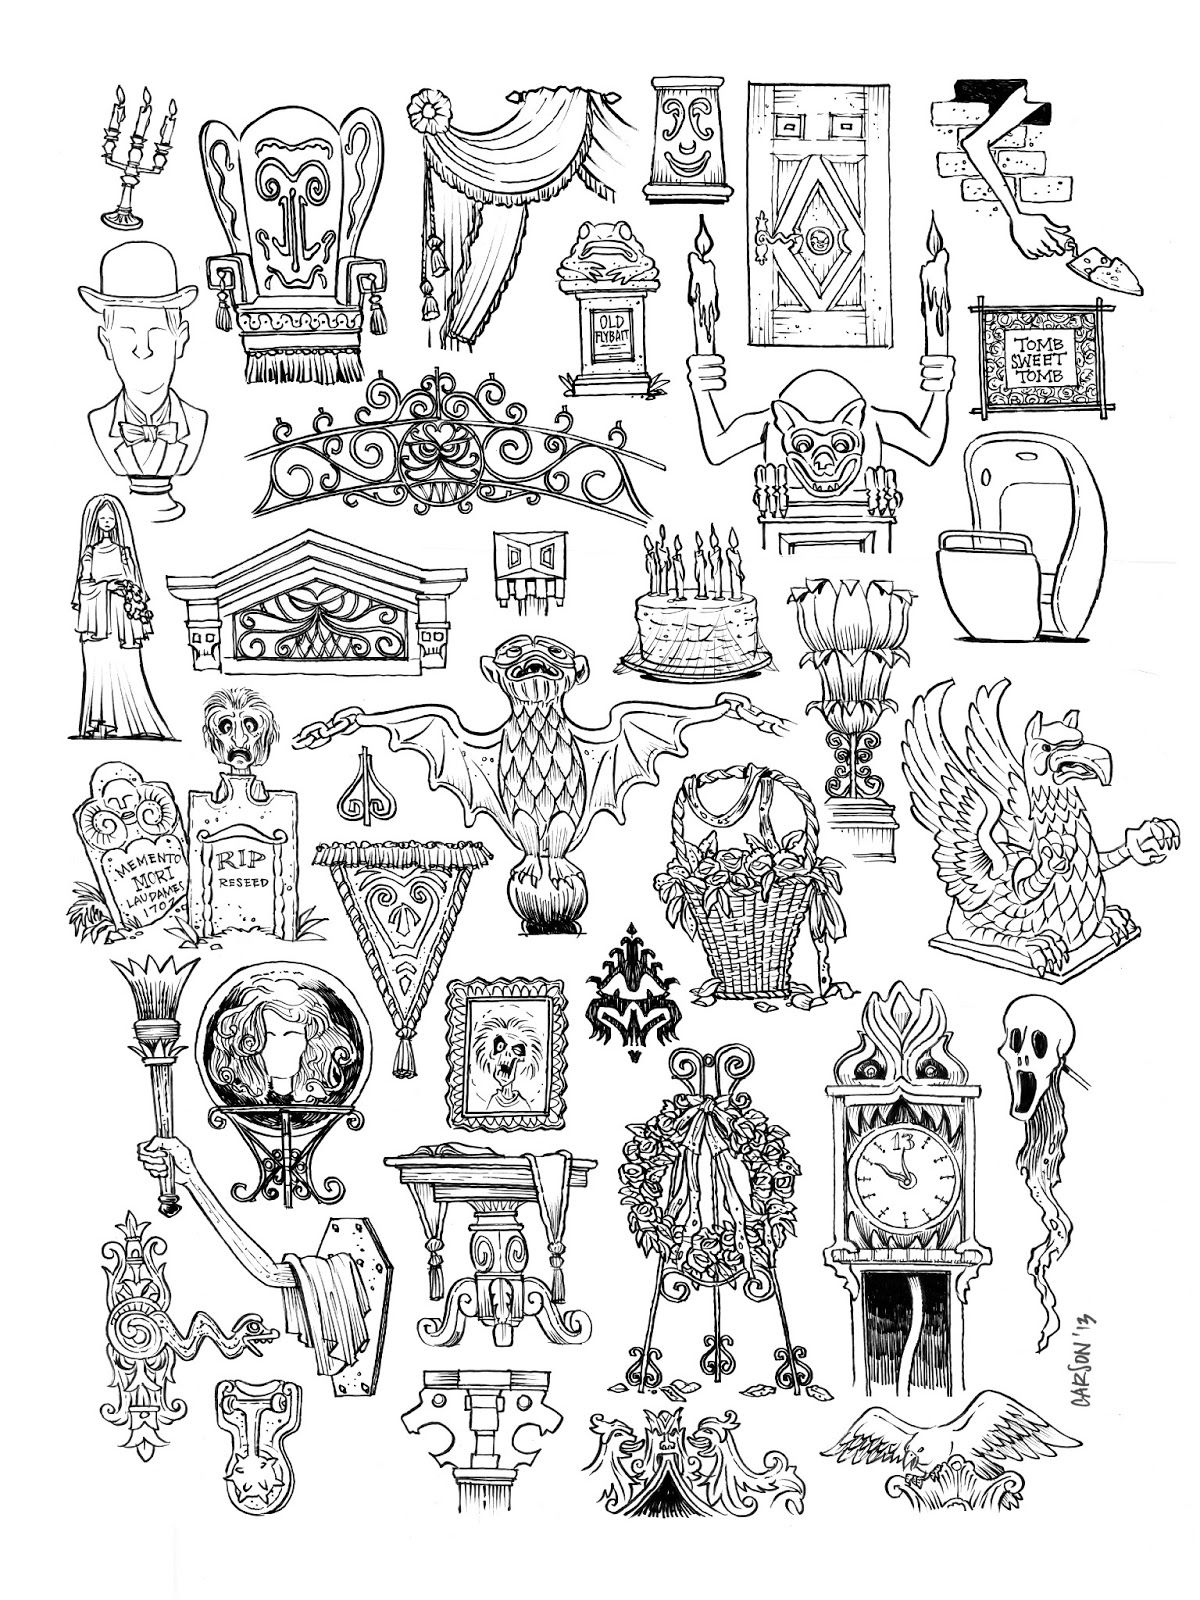 Haunted Mansion Parts Dcarson Jpg 1 200 1 600 Pixels Haunted Mansion Tattoo Haunted Mansion Halloween Disney Haunted Mansion